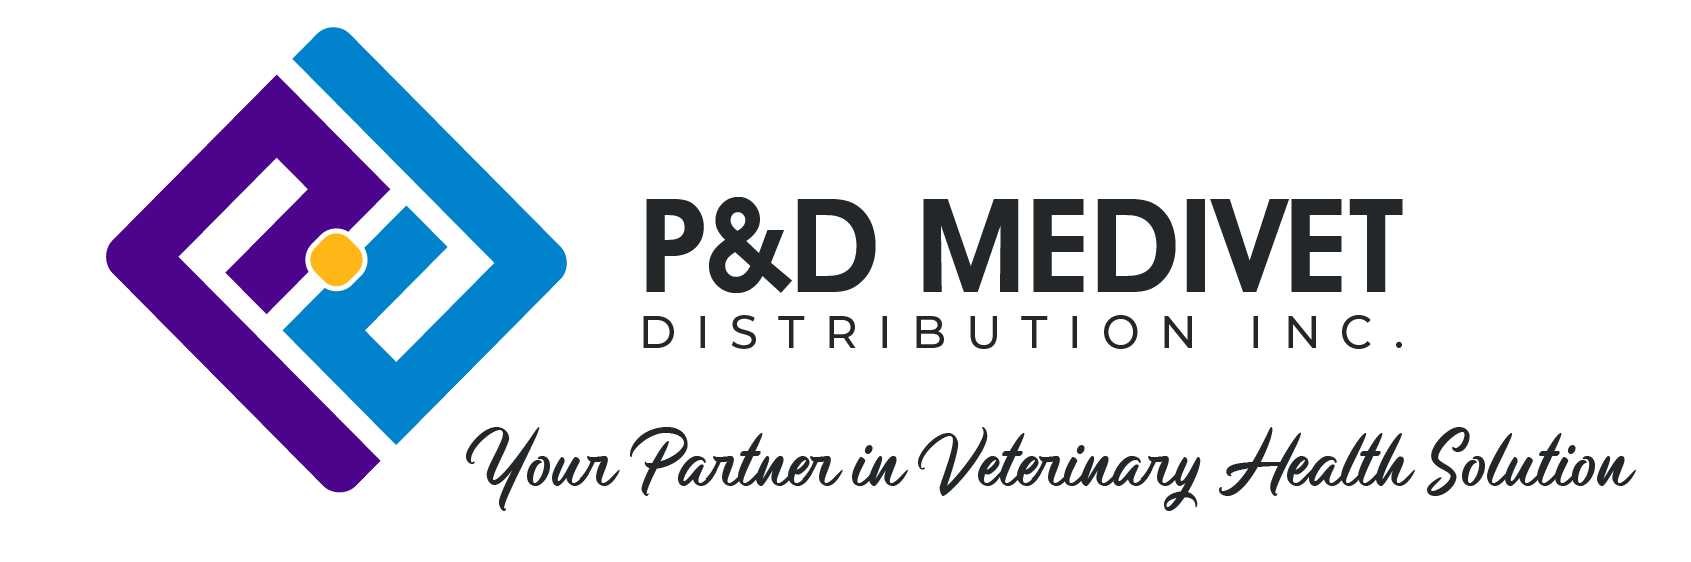 P & D Medivet Distribution